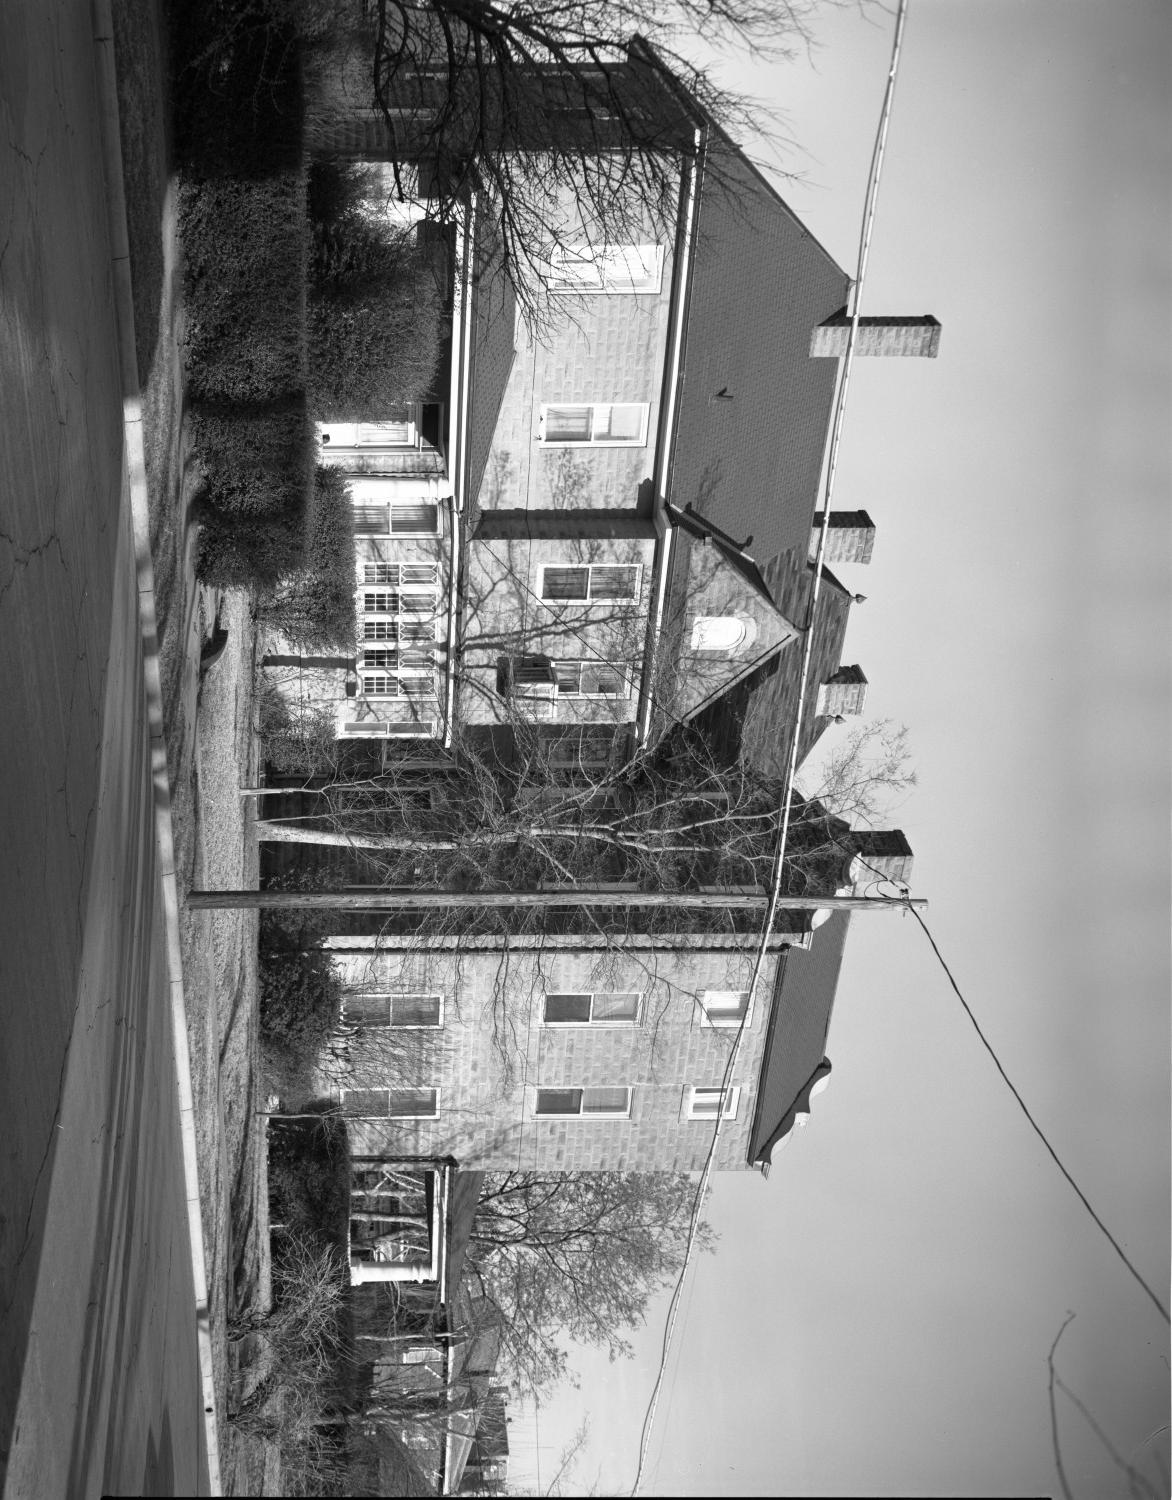 [416 NW 6th Street, western elevation]                                                                                                      [Sequence #]: 1 of 1